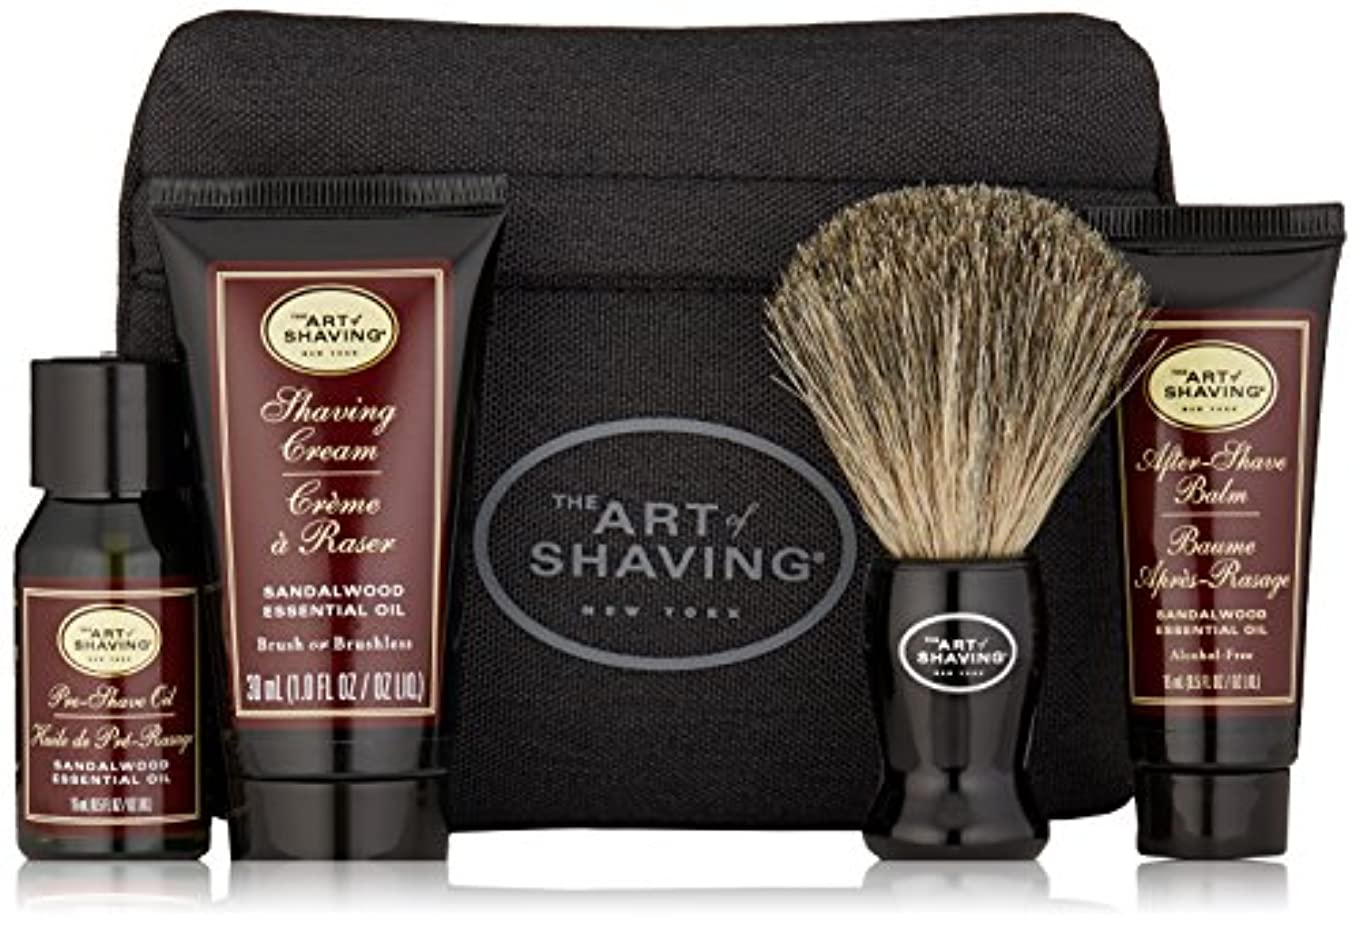 ウッズ年次水族館アートオブシェービング Starter Kit - Sandalwood: Pre Shave Oil + Shaving Cream + After Shave Balm + Brush + Bag 4pcs + 1Bag...